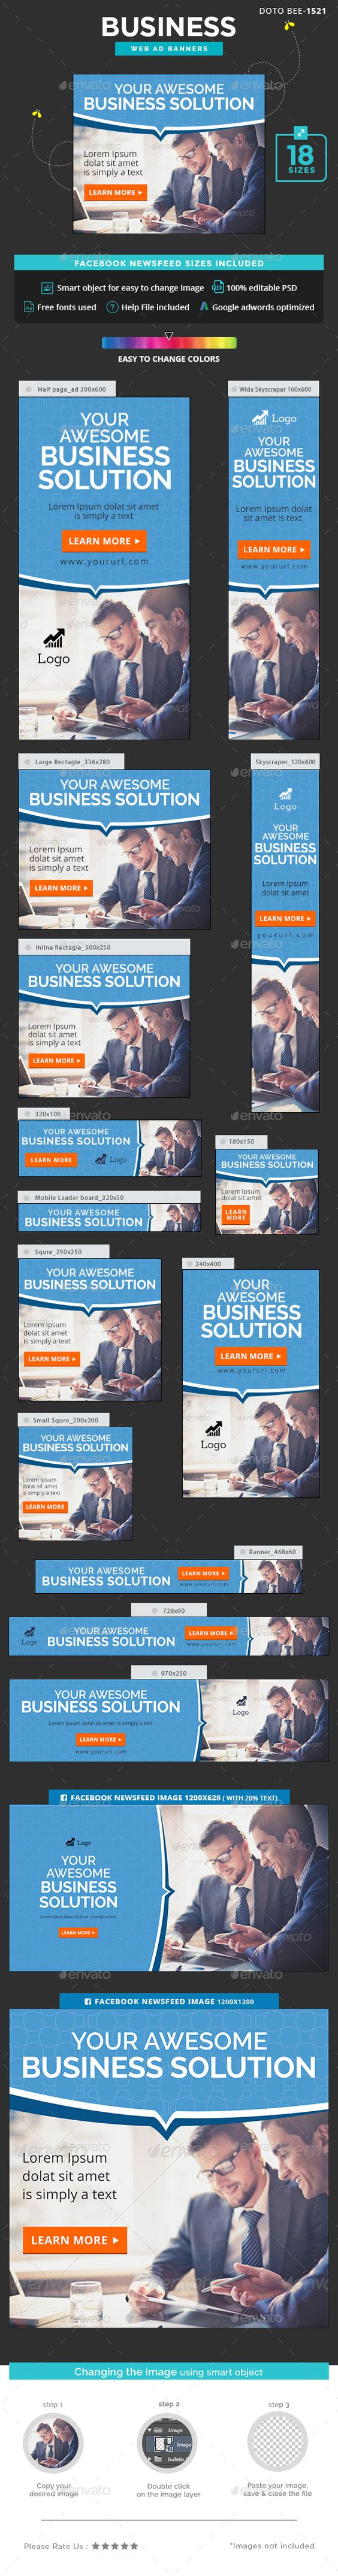 Business Banners — Photoshop PSD #flat design #banners • Available here → https://graphicriver.net/item/business-banners/16875046?ref=pxcr